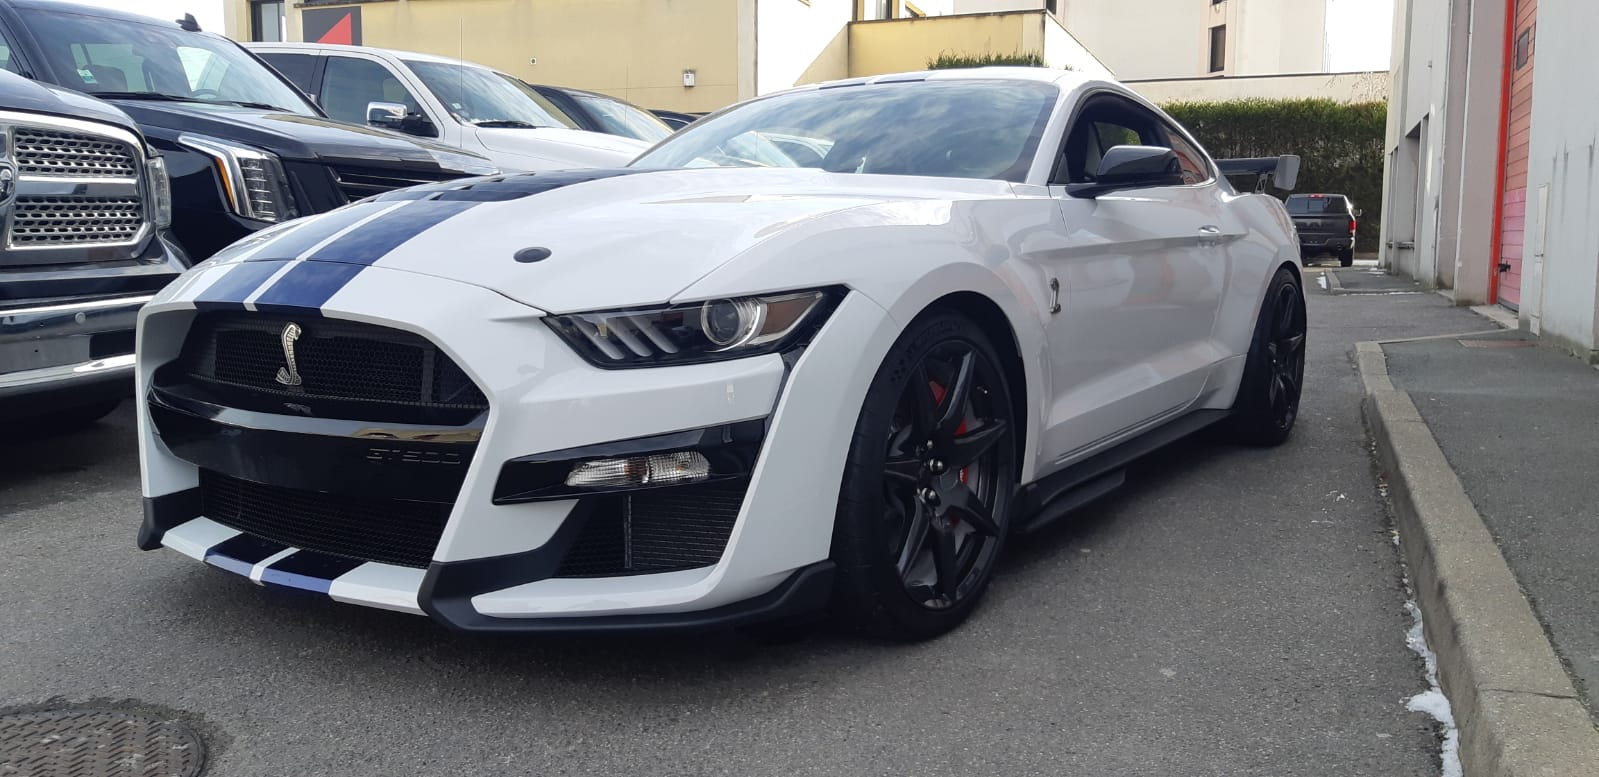 FORD MUSTANG Shelby gt500 pack carbone recaro techno v8 5.2l supercharged 760hp